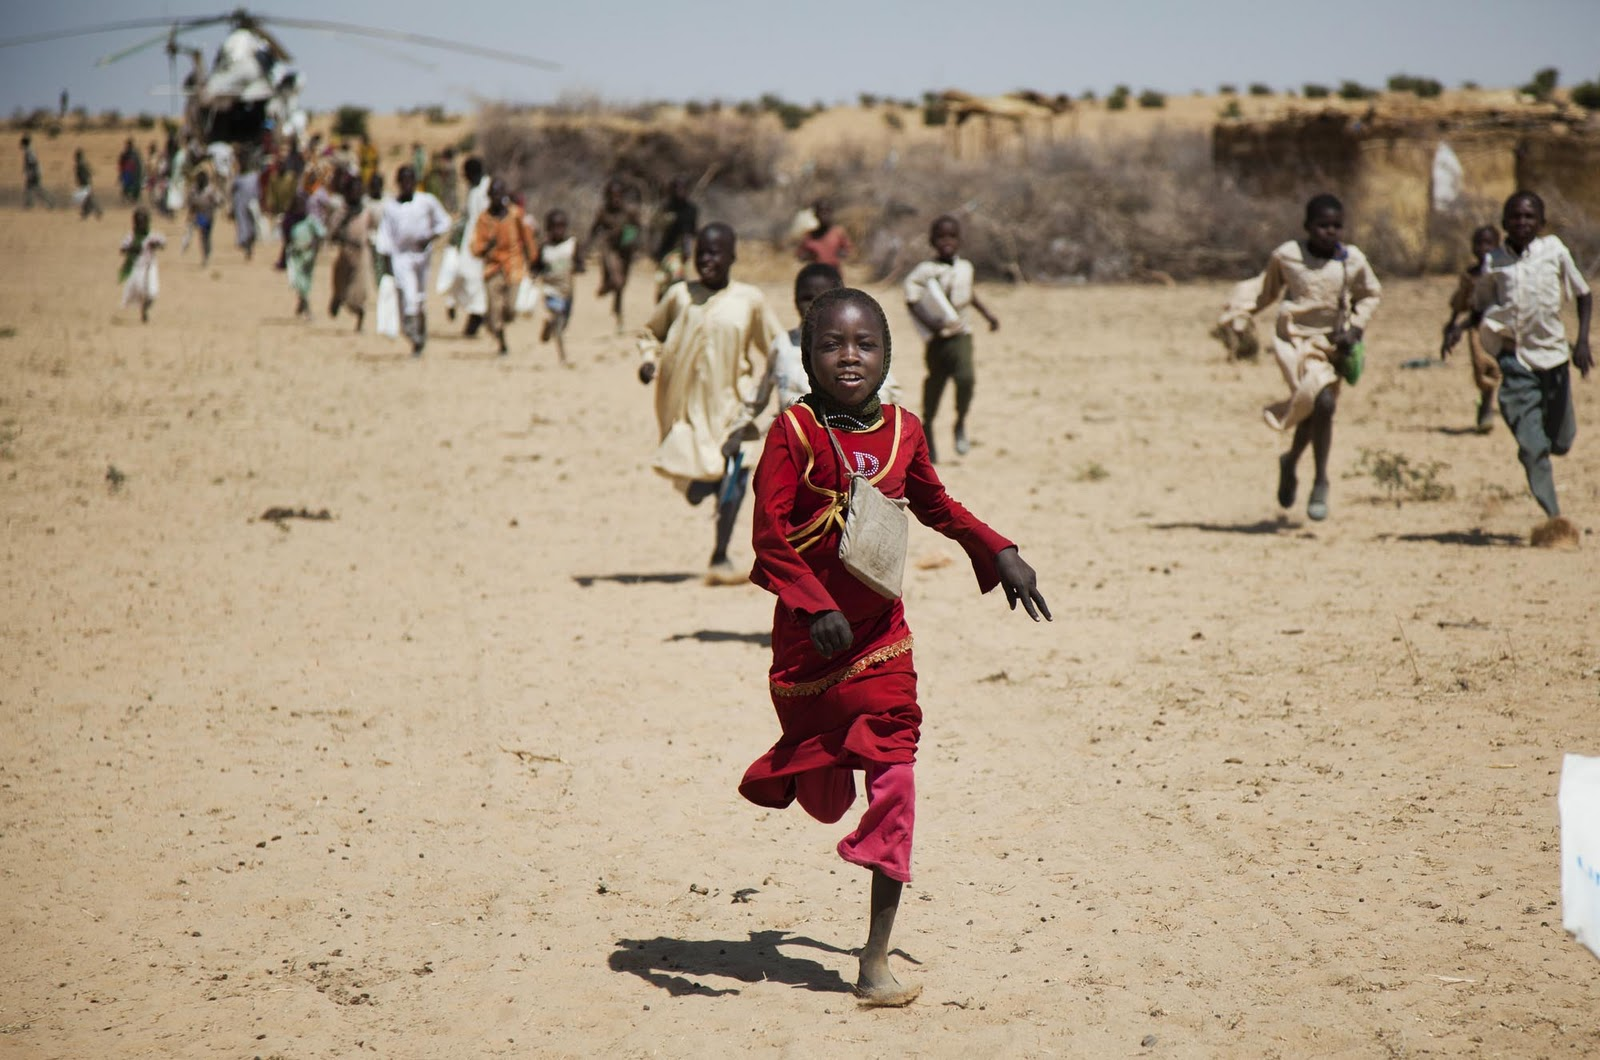 west-darfur-children-unamid-albert-gonzalez-farran